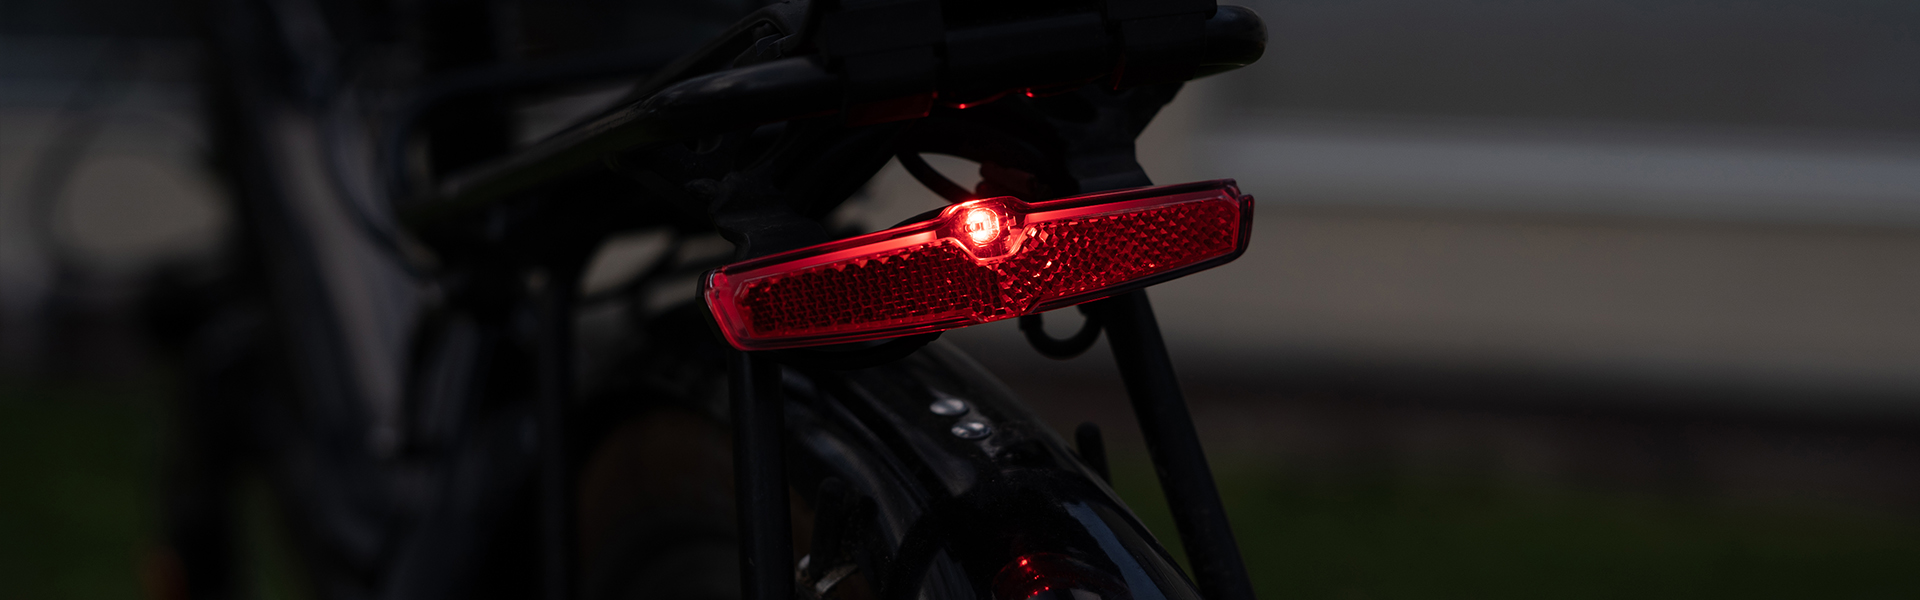 LF-23 NEW Sate-Lite USB rechargeable bicycle headlight with 1000 Lumen